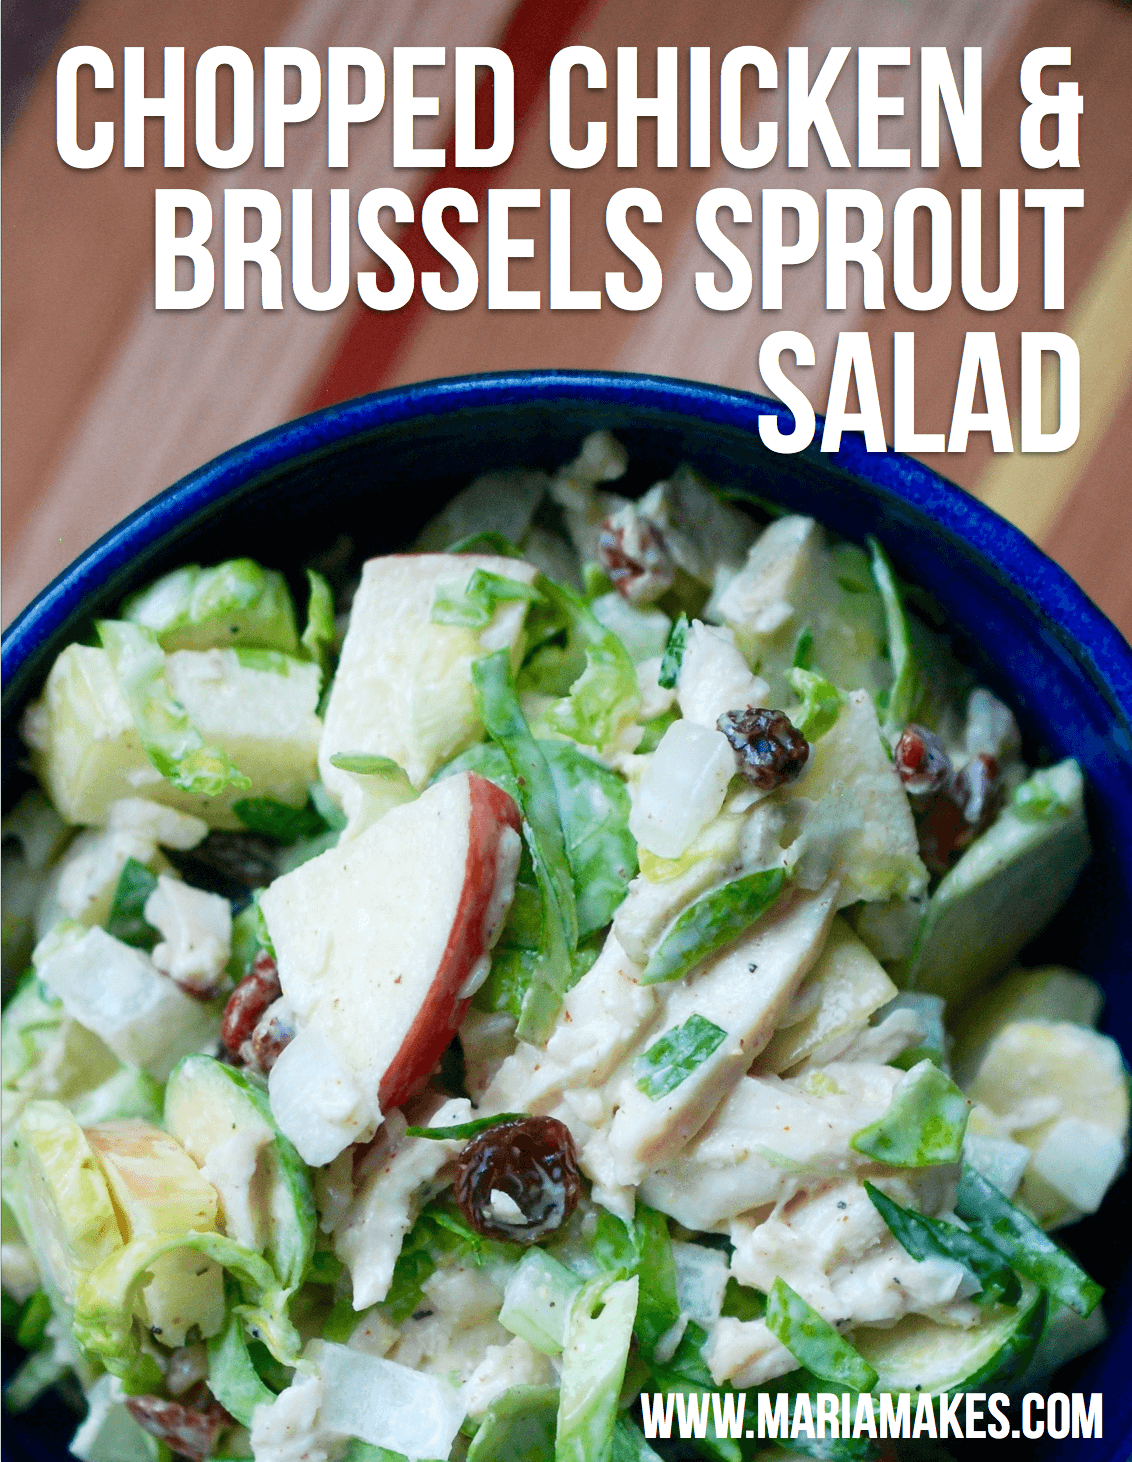 Chopped Chicken & Brussels Sprout Salad   Reader fave right here… here's another one you can dress ahead of time! The brussels sprouts are hearty enough to stand up to the dressing (think of it like a slaw). The vinegar in the dressing also keeps the apples from turning brown, so feel free to prep this one up to 3 days in advance!